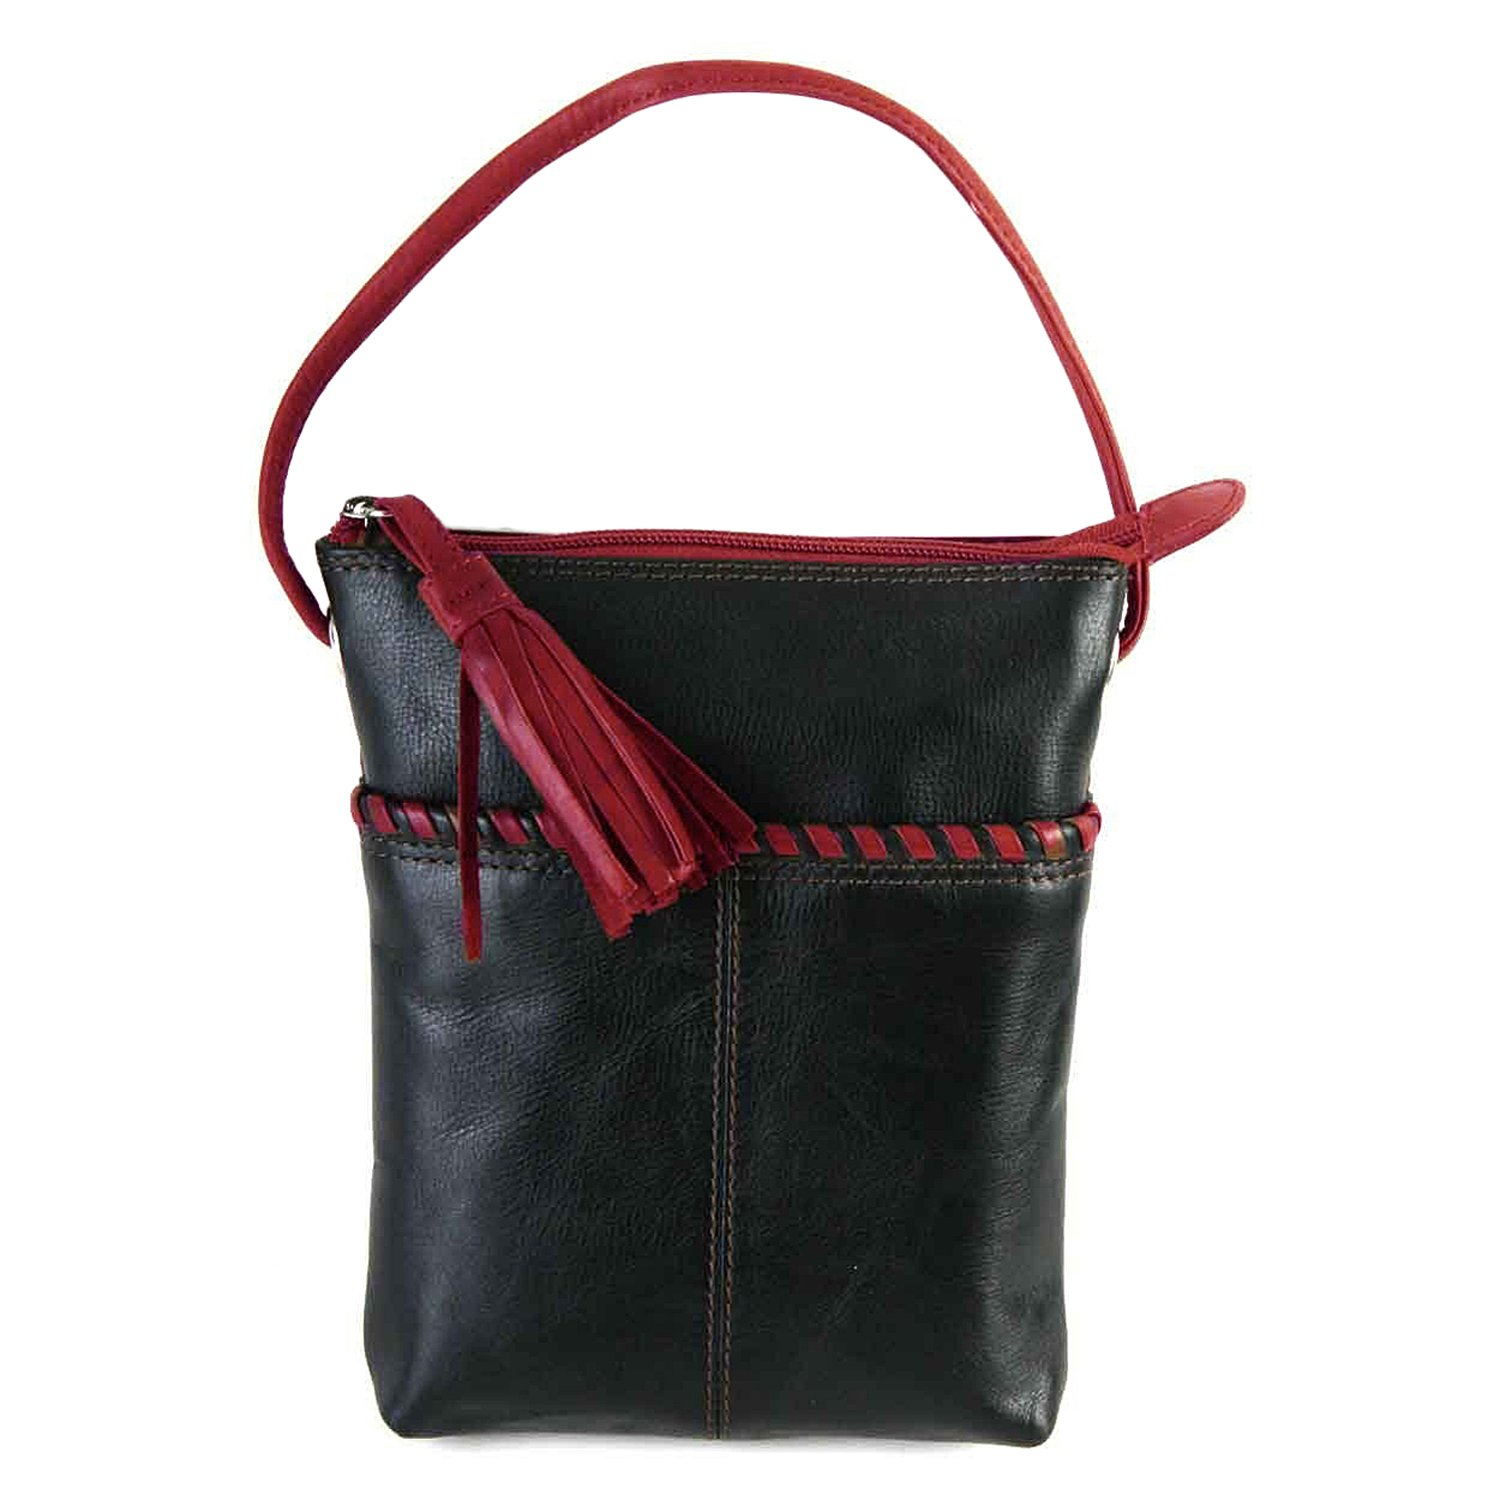 51eea23c6727 Whipstitched Leather Cross-body Handbag (Black/Red): Handbags: Amazon.com